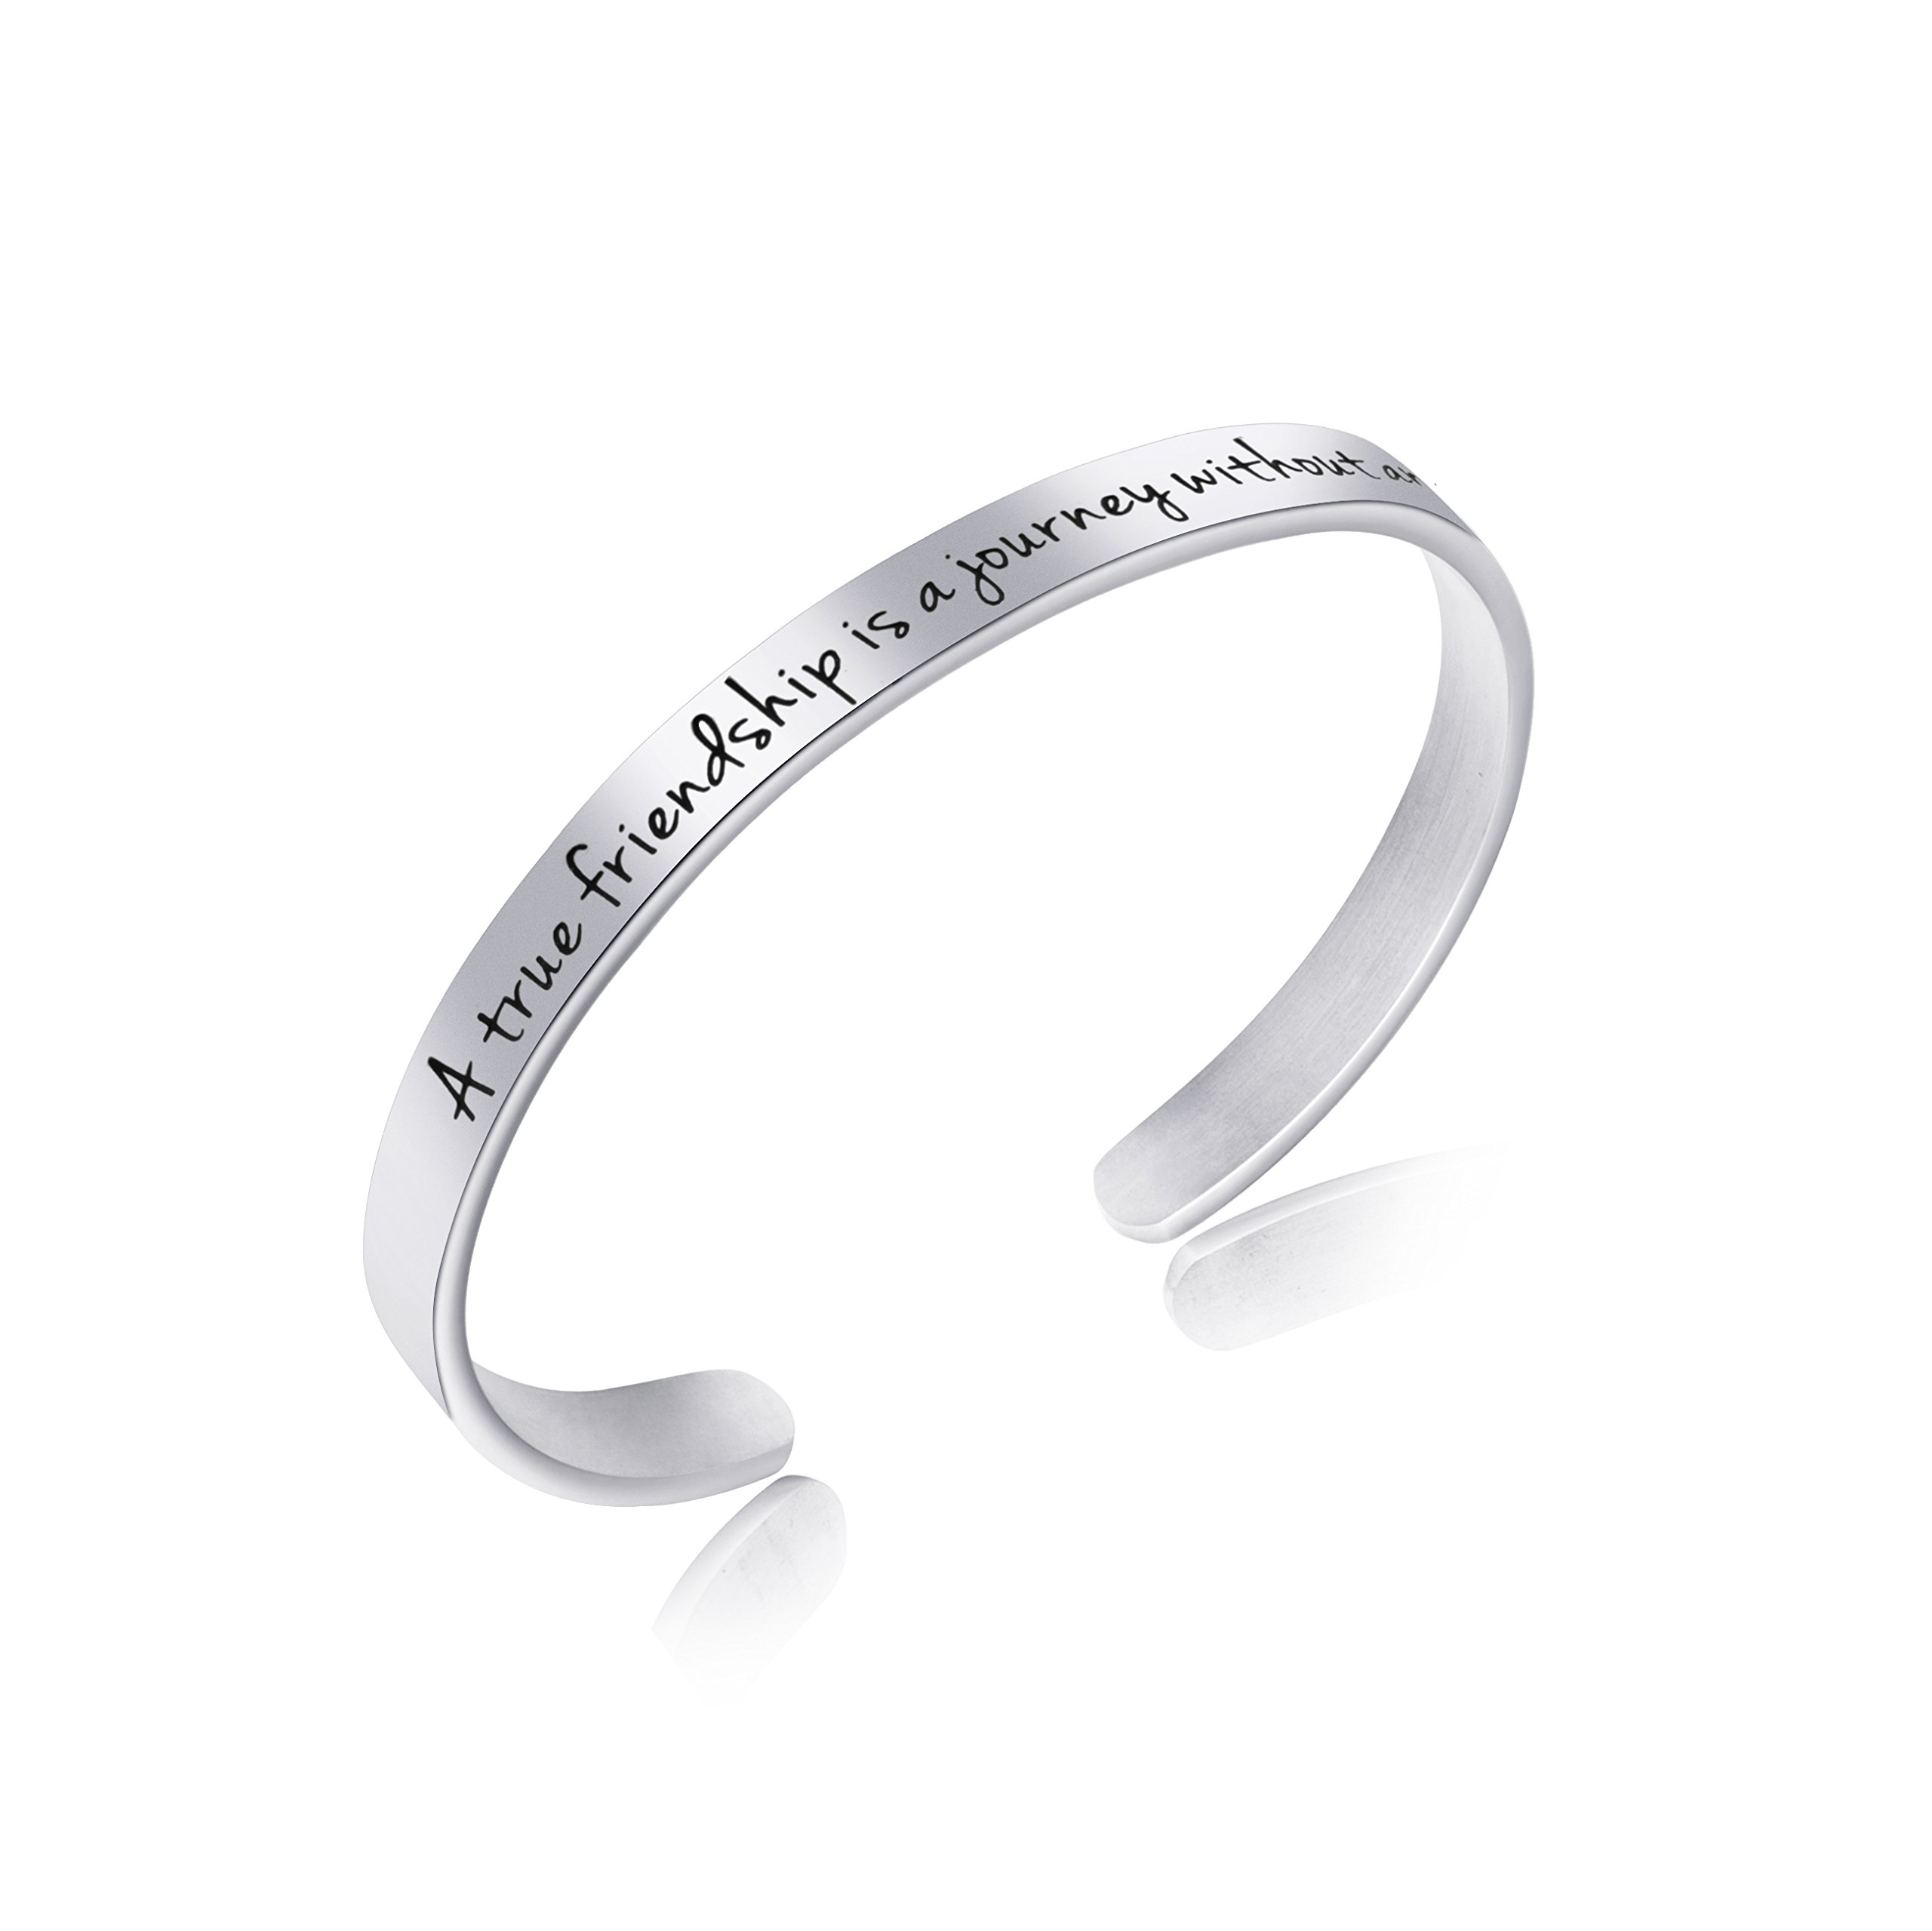 Awegift Personalized Bracelet Inspirational Friendship Bangle Cuff Engraved Mantra Message Birthday Gift Her